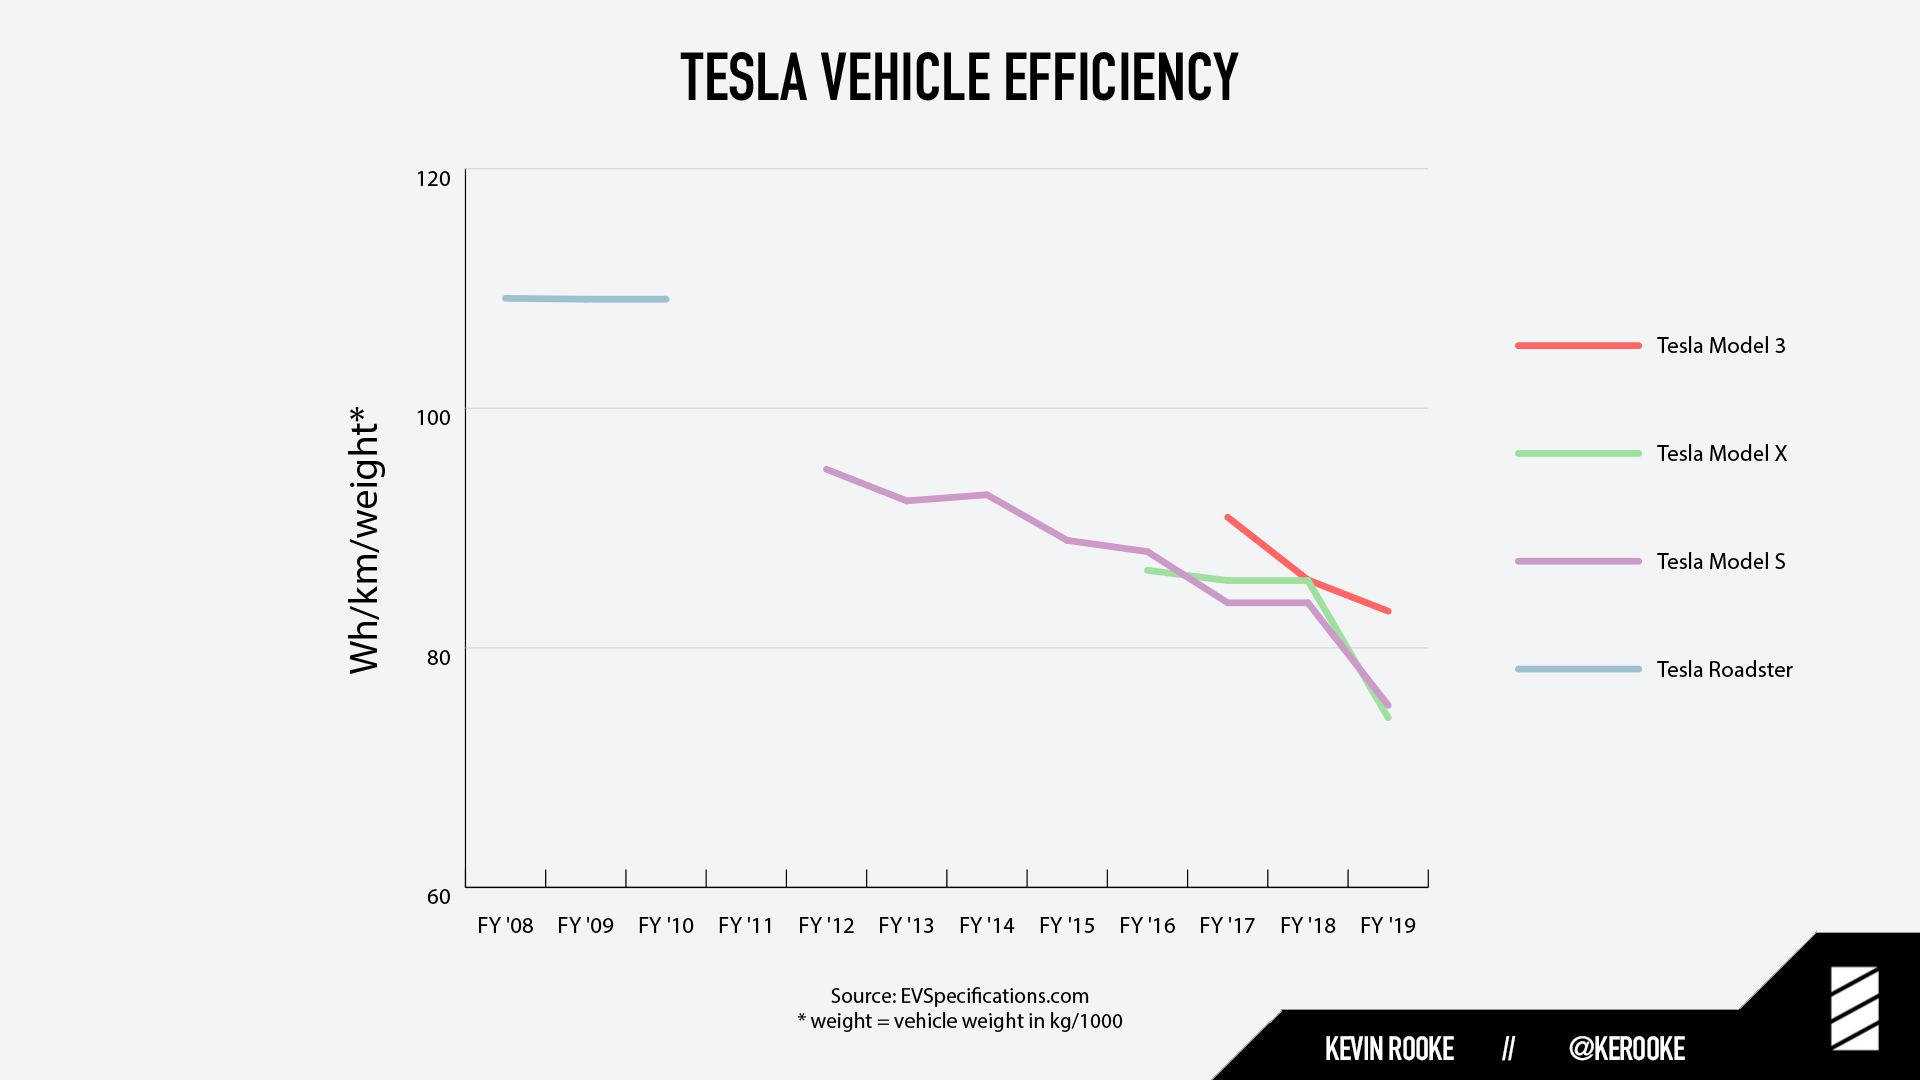 Tesla vehicle efficiency